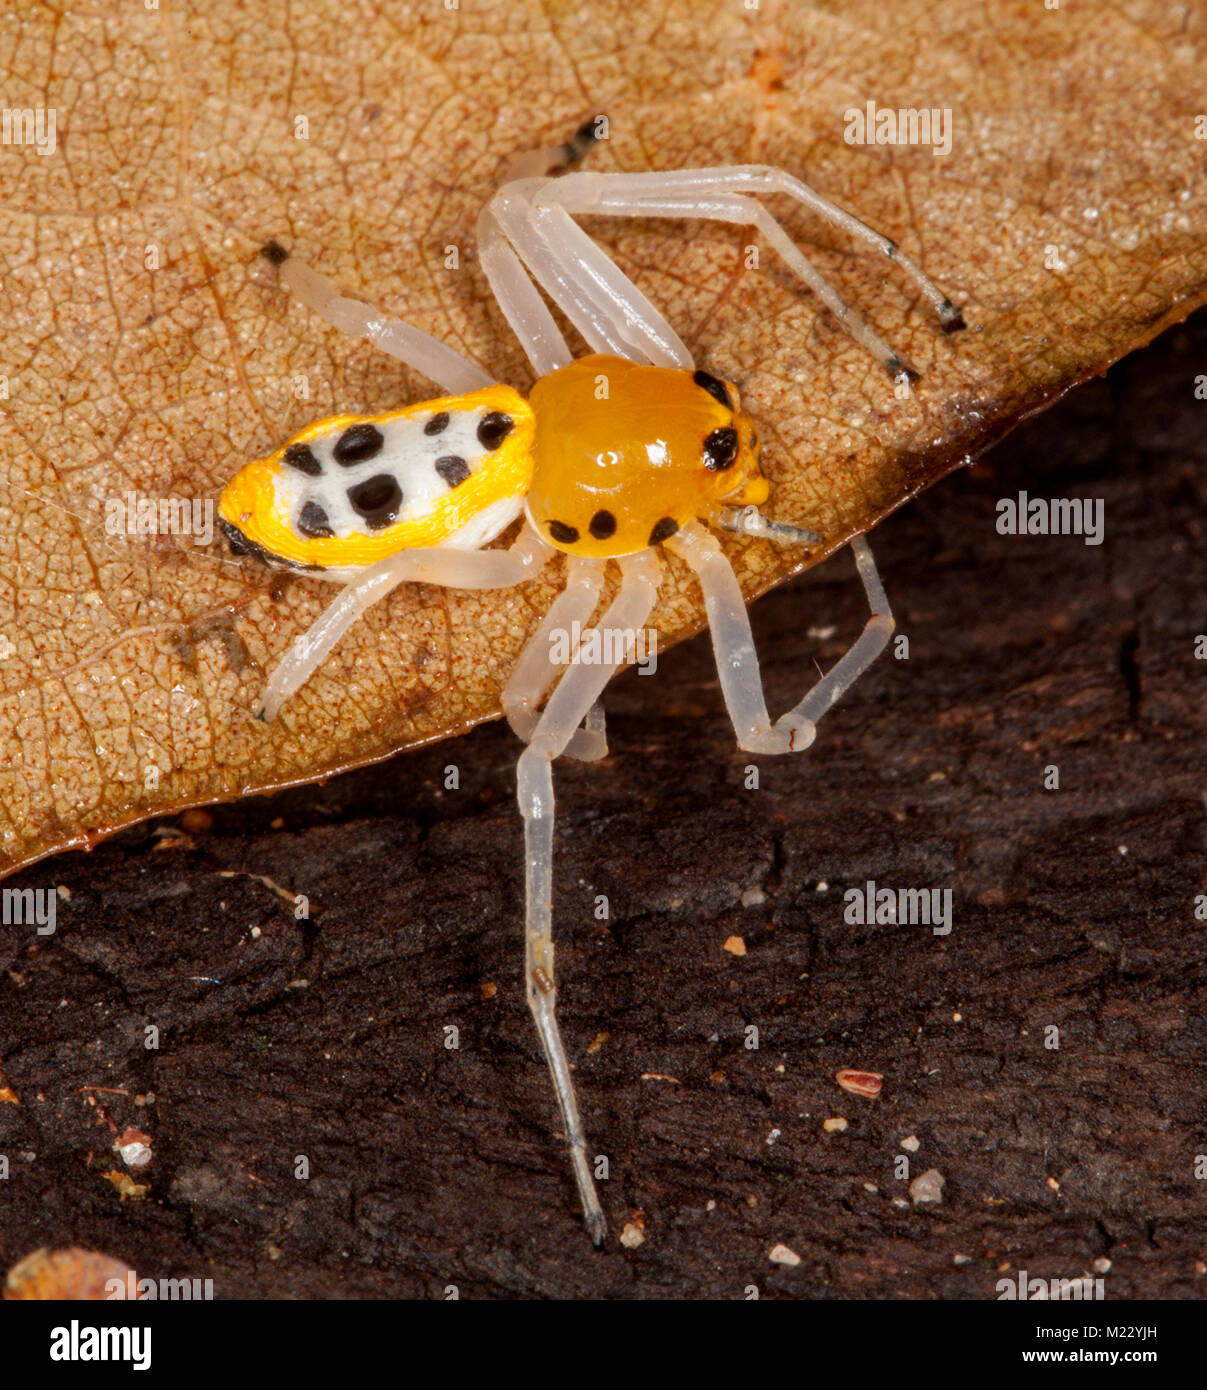 Beautiful and unusual yellow and black Australian Crab Spider, Poecilothomisus speciosus, on dry brown leaf - Stock Image